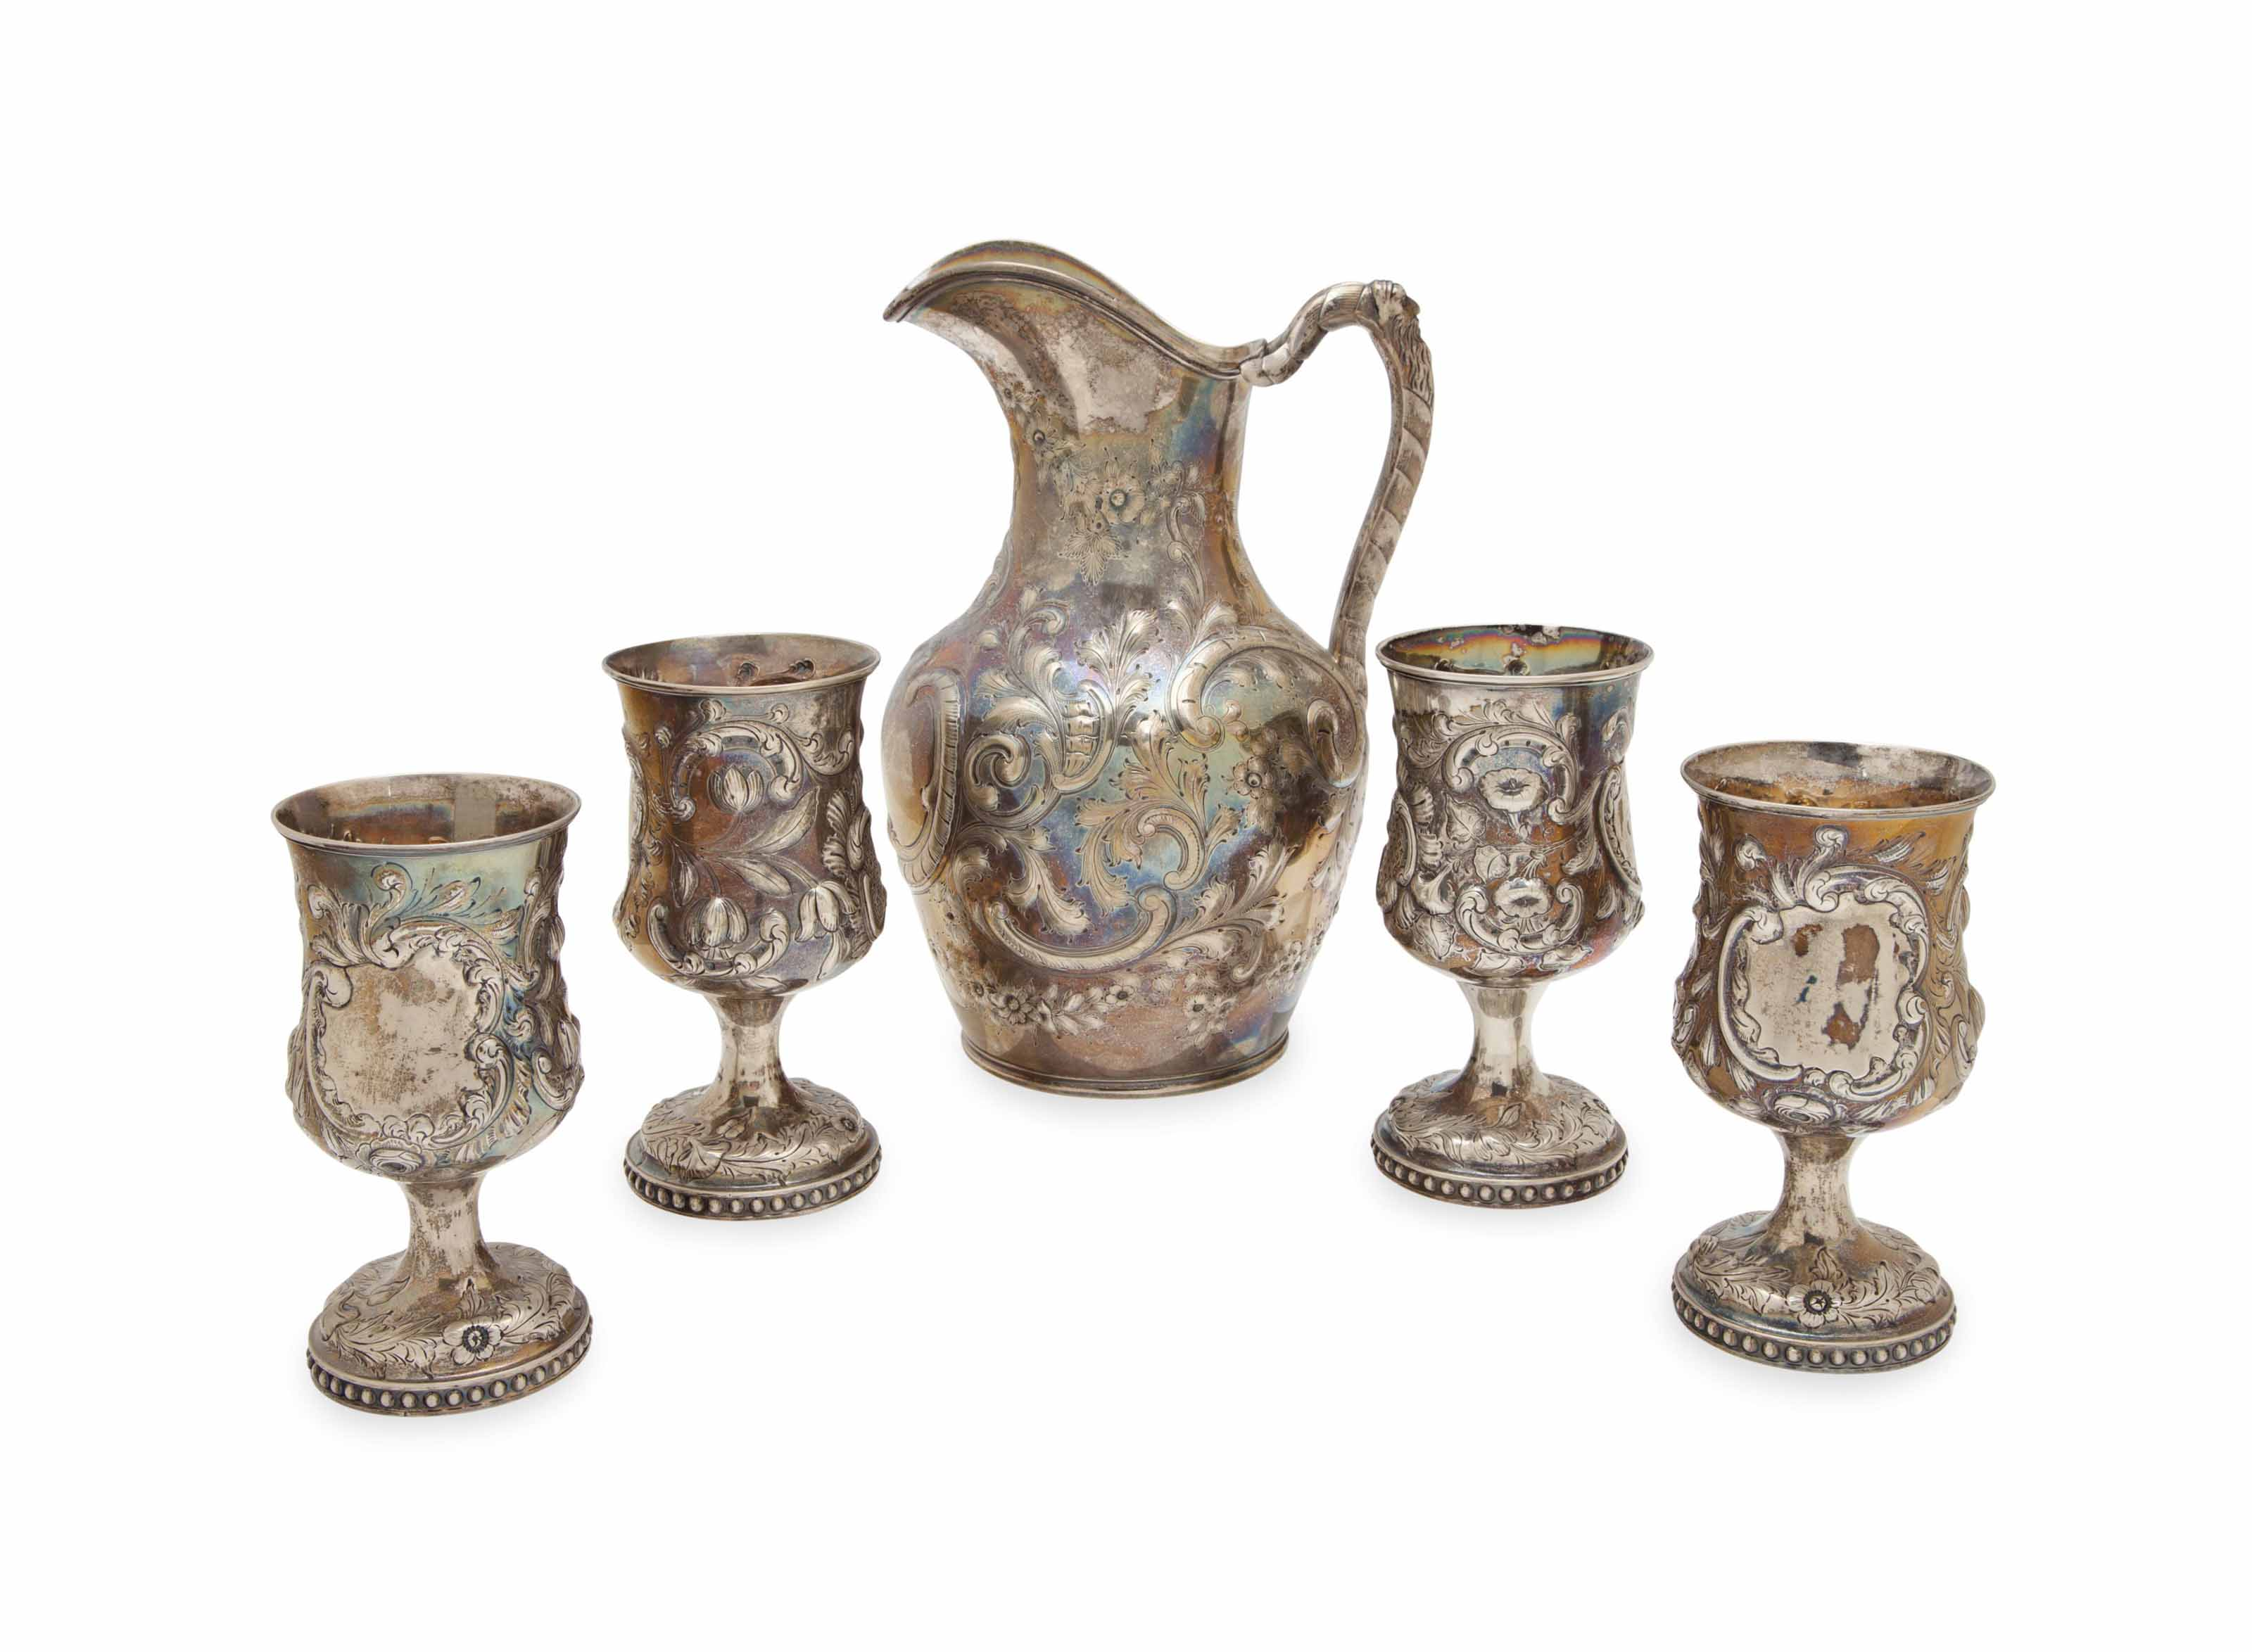 AN EARLY AMERICAN REPOUSSE SILVER WATER PITCHER, AND FOUR GOBLETS,